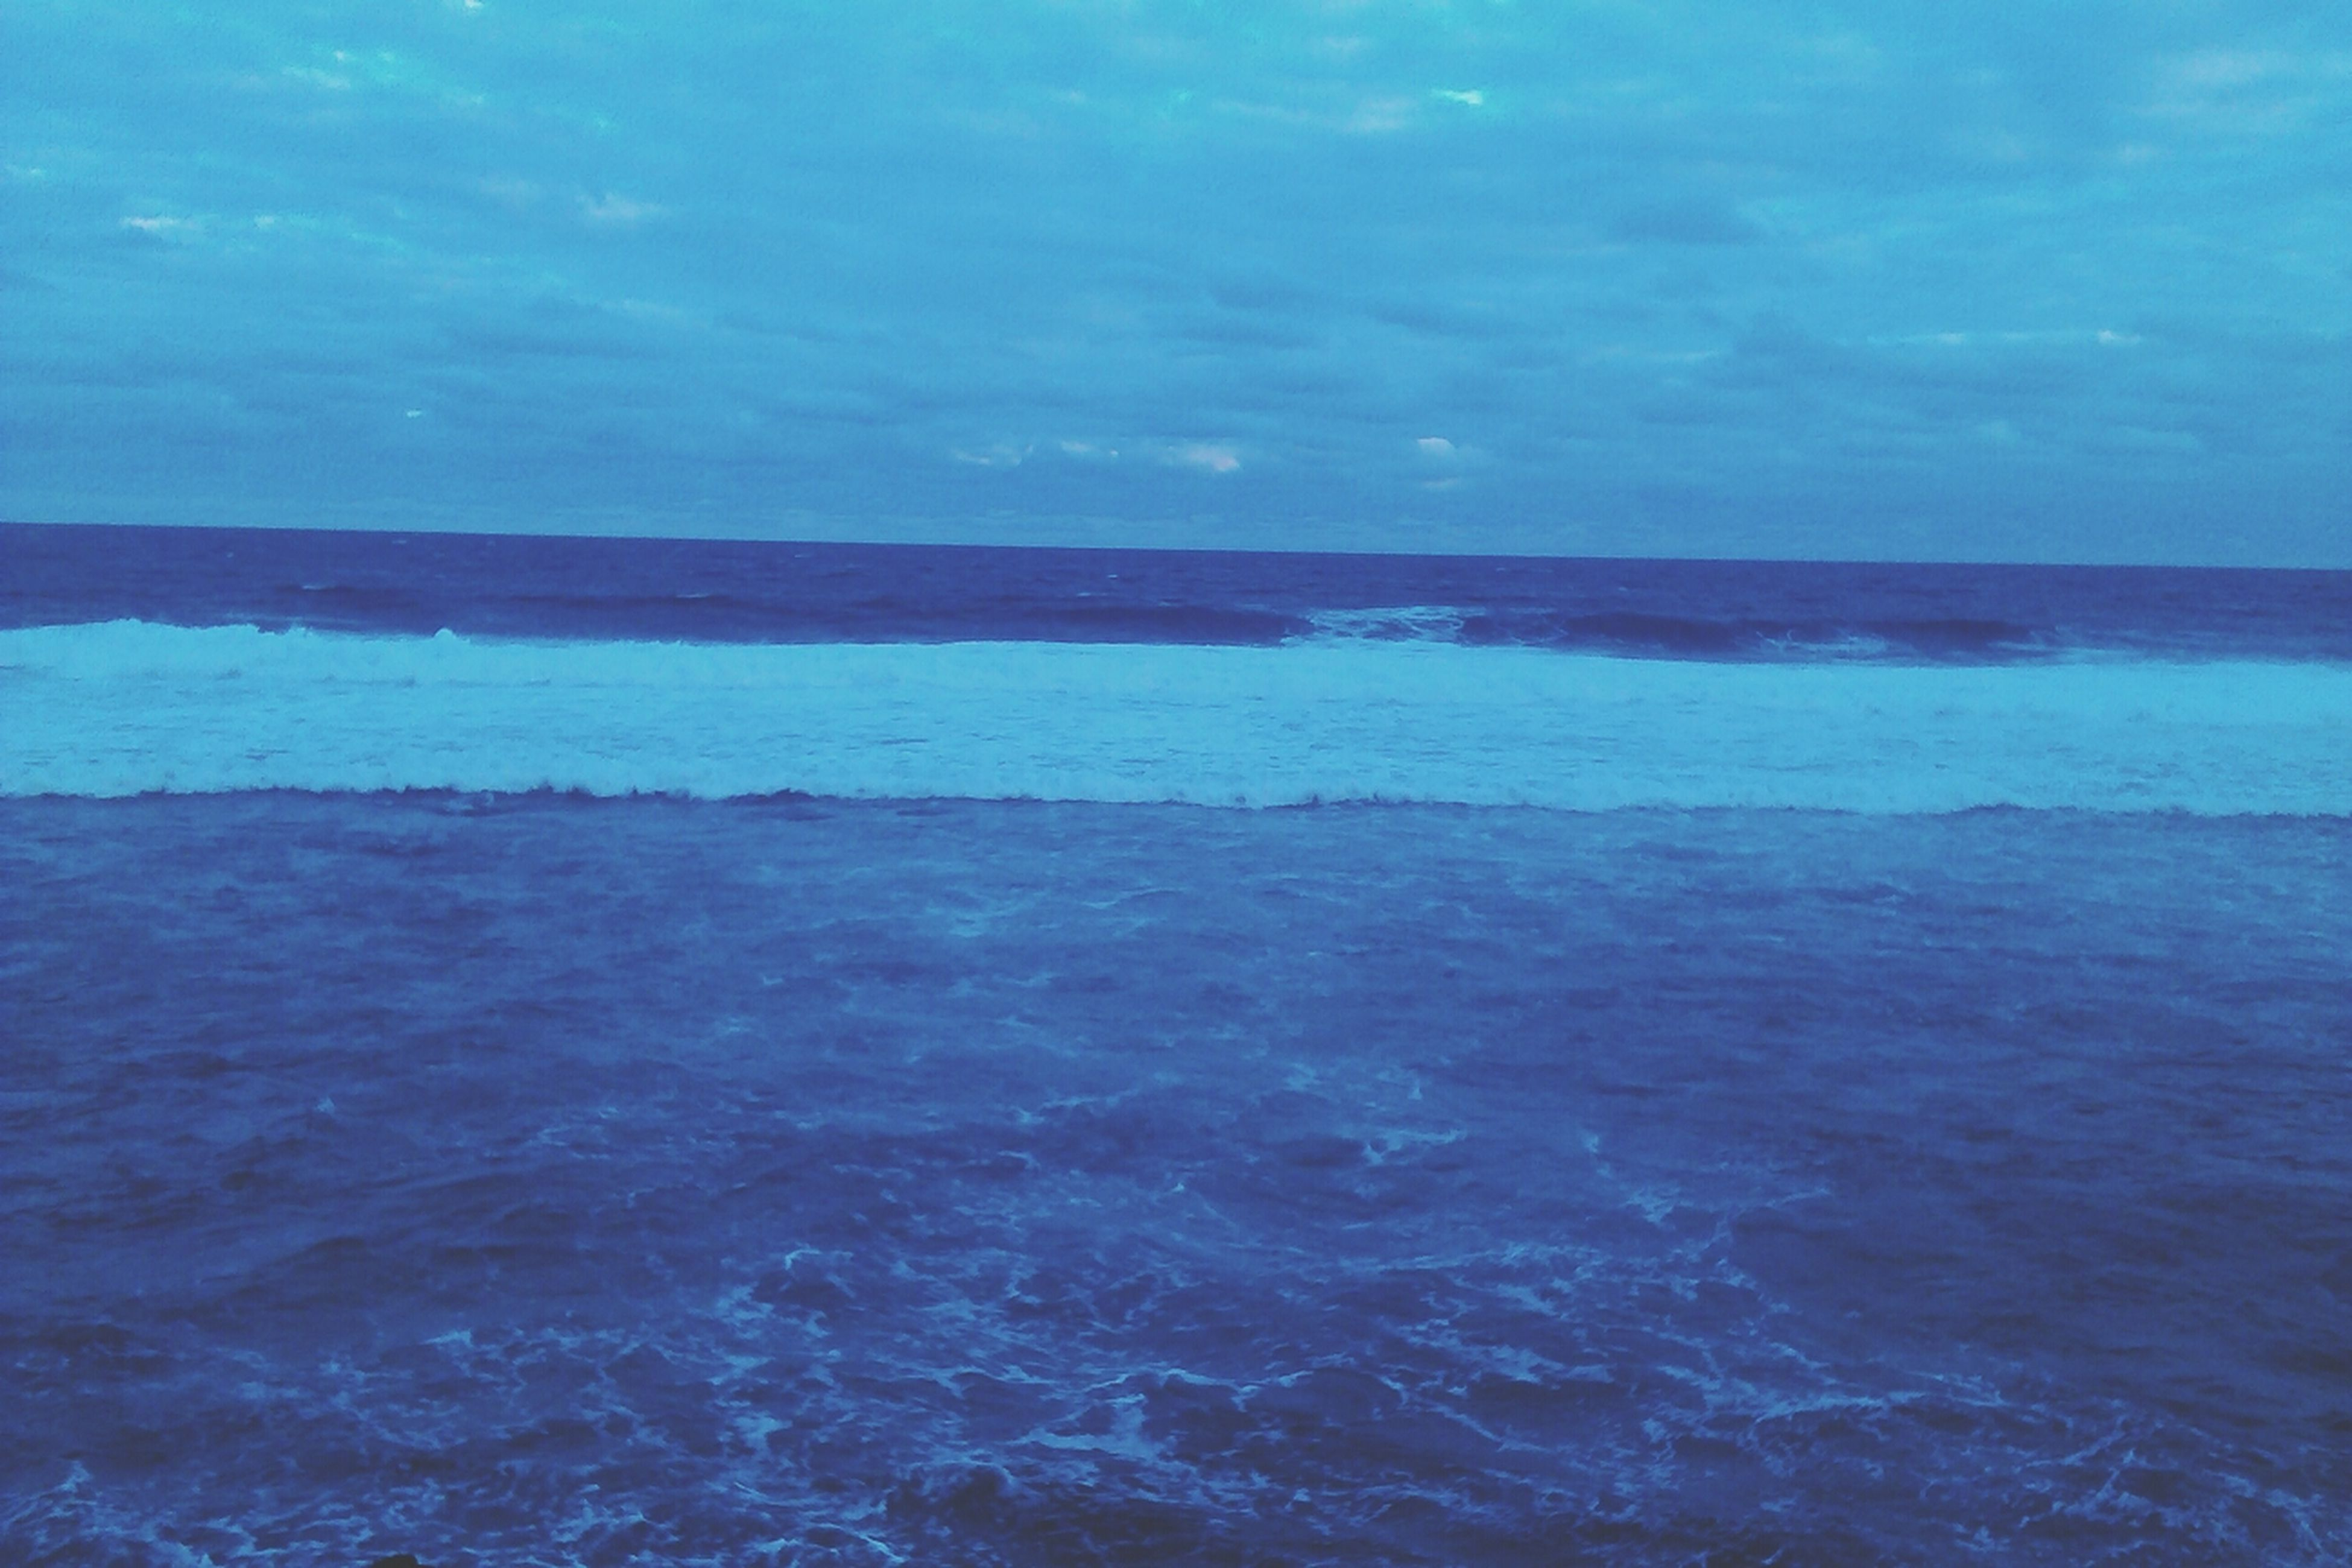 water, sea, blue, waterfront, tranquility, beauty in nature, rippled, tranquil scene, nature, scenics, sky, idyllic, beach, turquoise colored, day, outdoors, no people, wave, horizon over water, shore